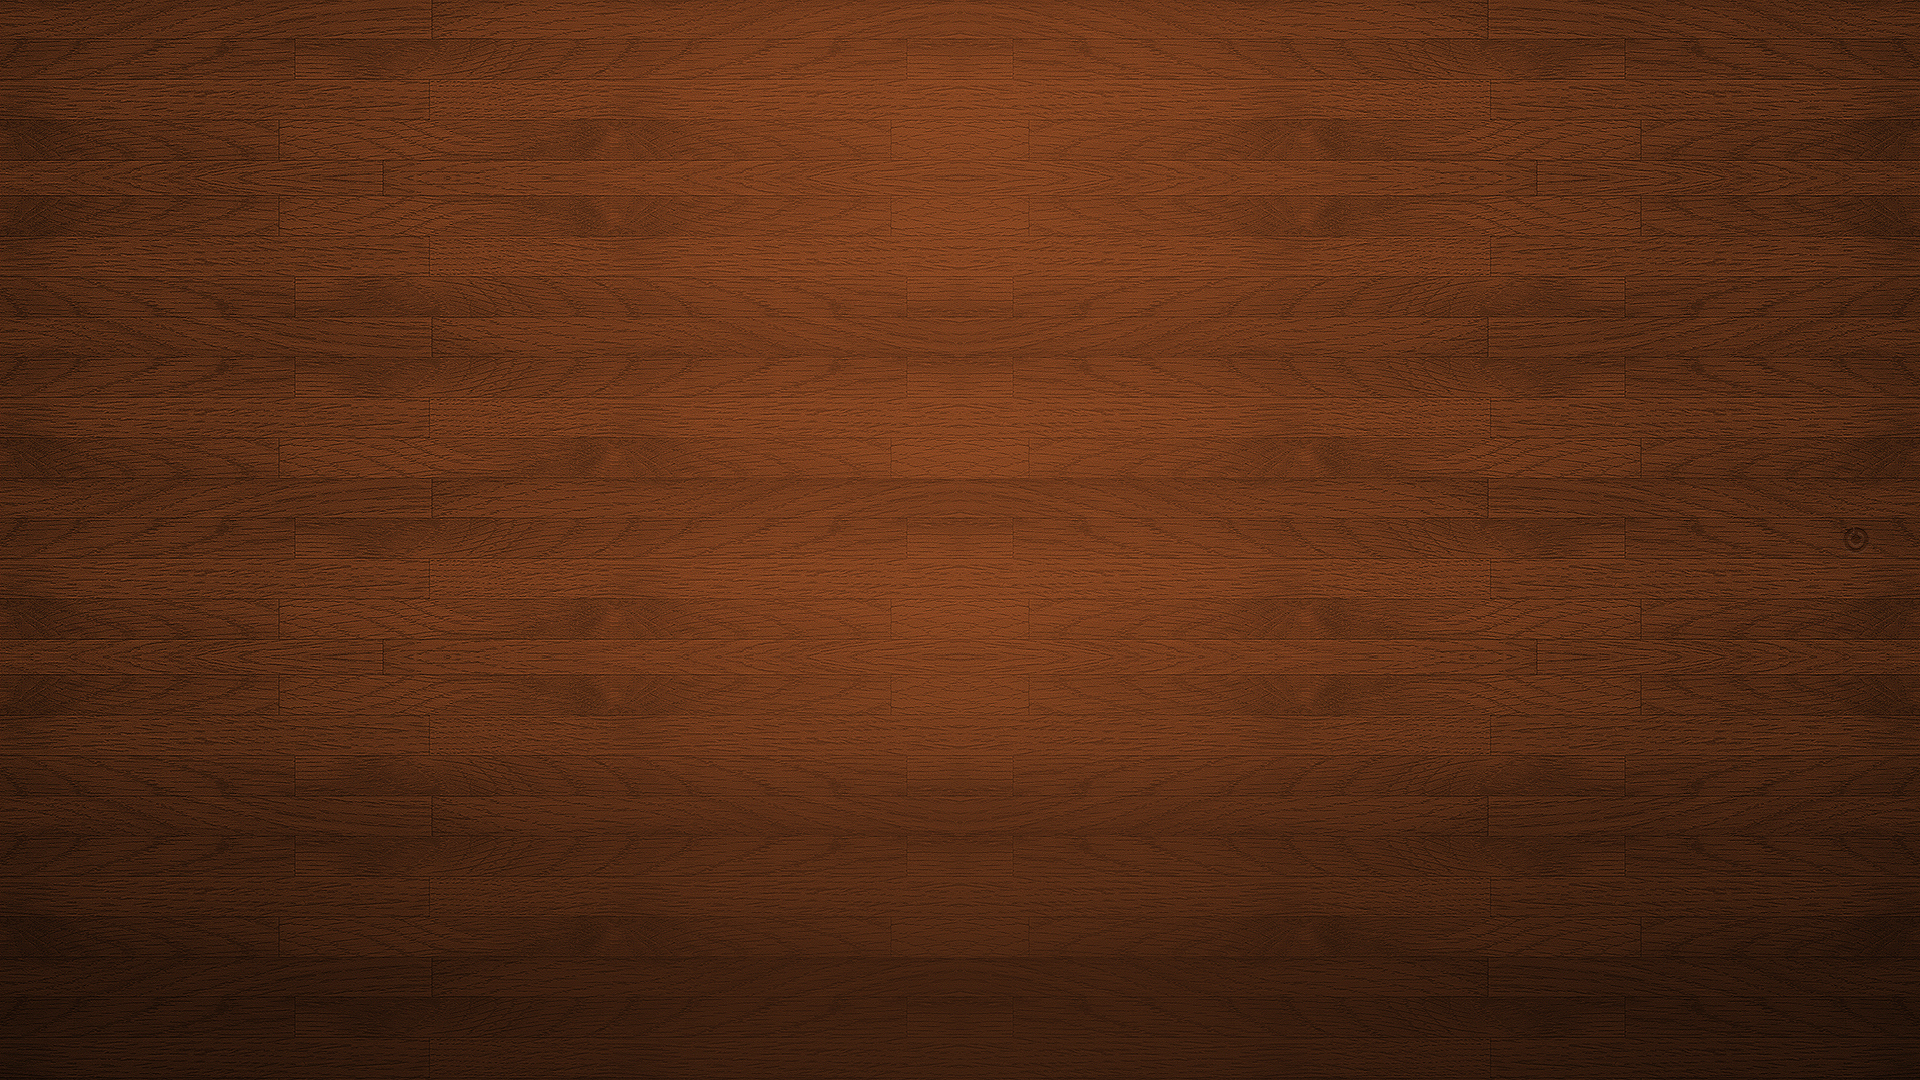 Minimalist Stage Floor 3d View Lights Wood Textures Backgrounds 1920x1080